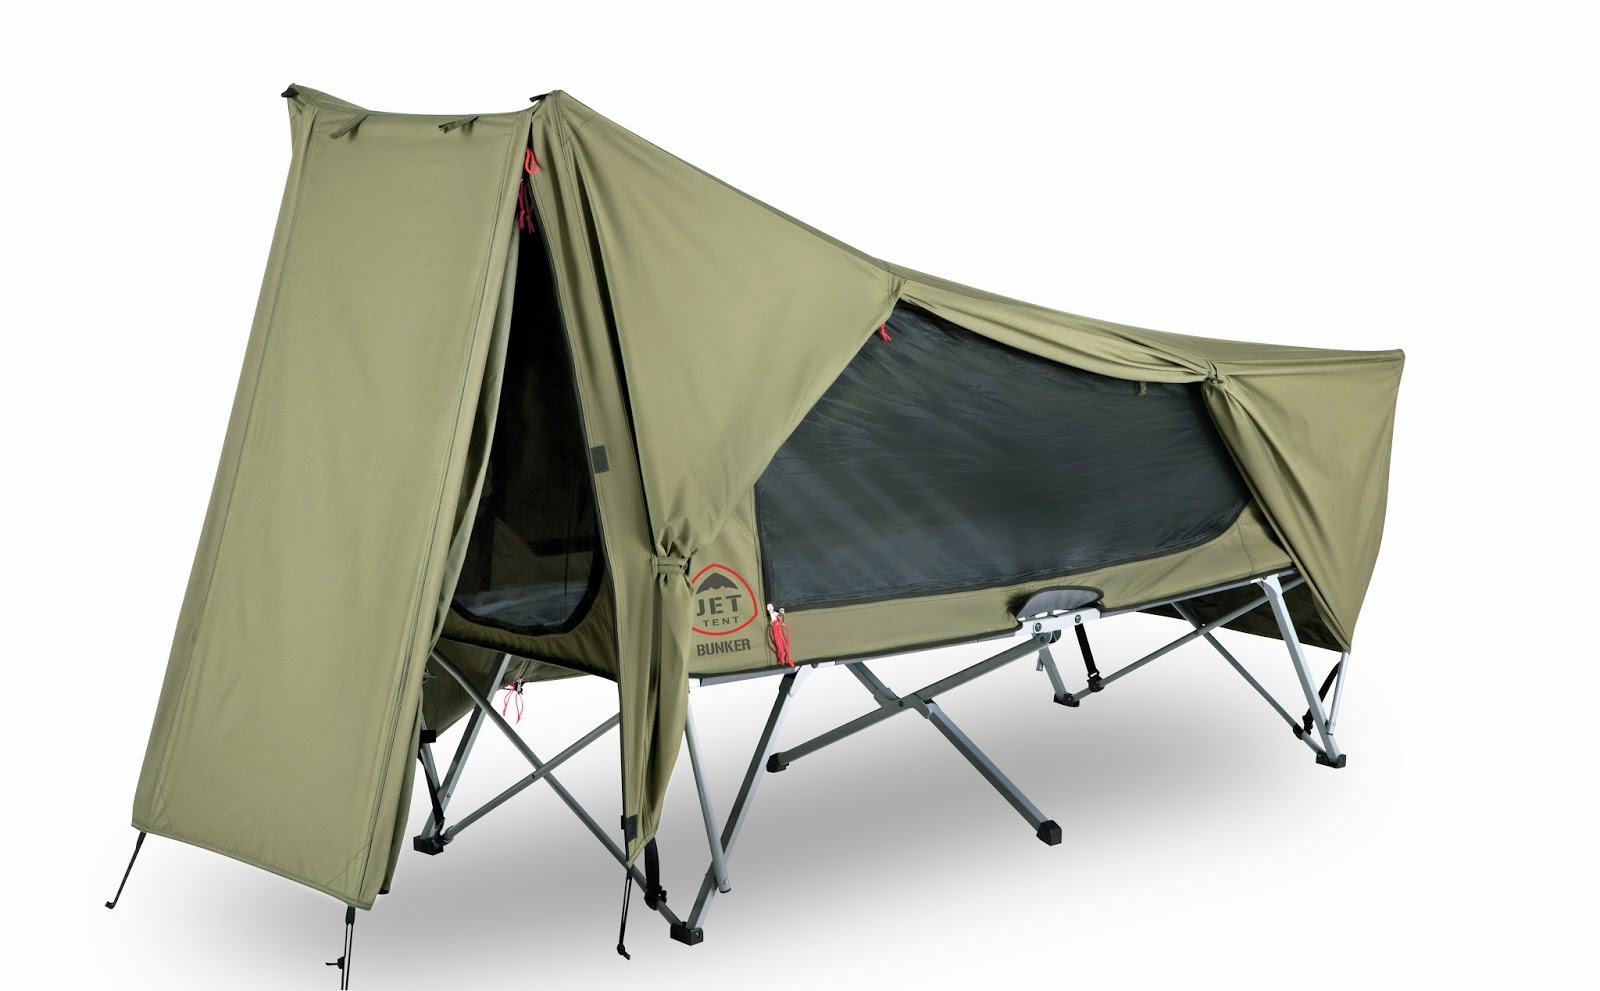 Click Here for more info and pricing on the Jet Tent Bunker and Jet Tent Bunker XL  sc 1 st  Family Tent C&ing & Family Tent Camping : Jet Tent Bunker XL Tent Cot by OzTent